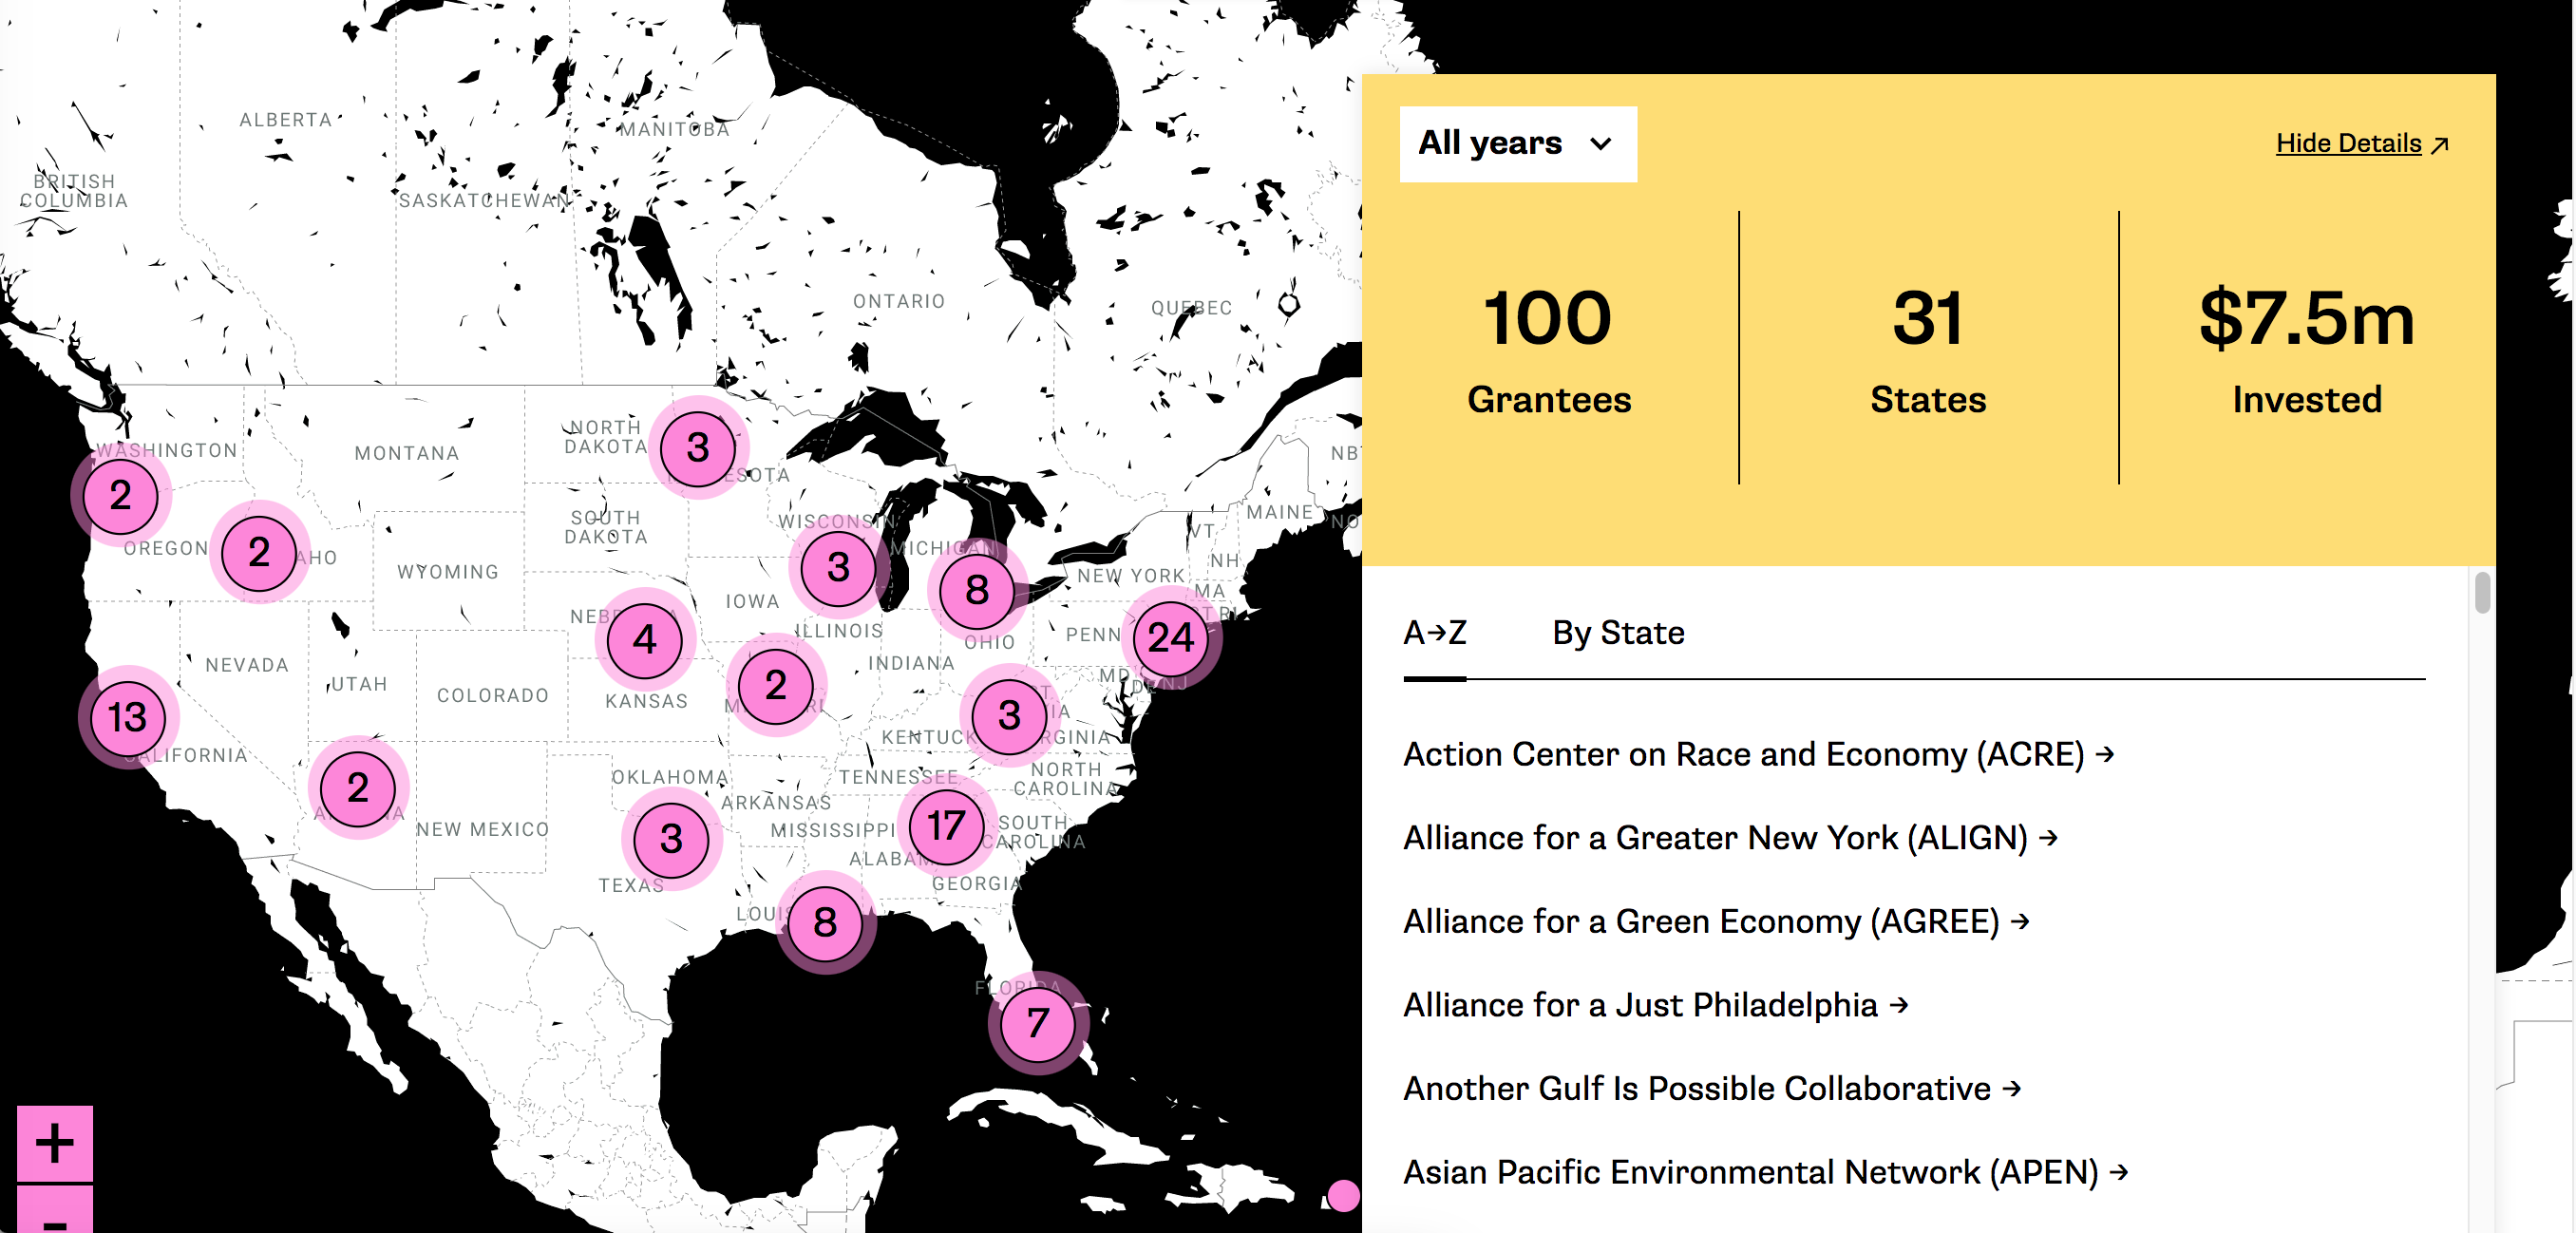 Image of an interactive map of the United States, with clickable areas, and filtering options.